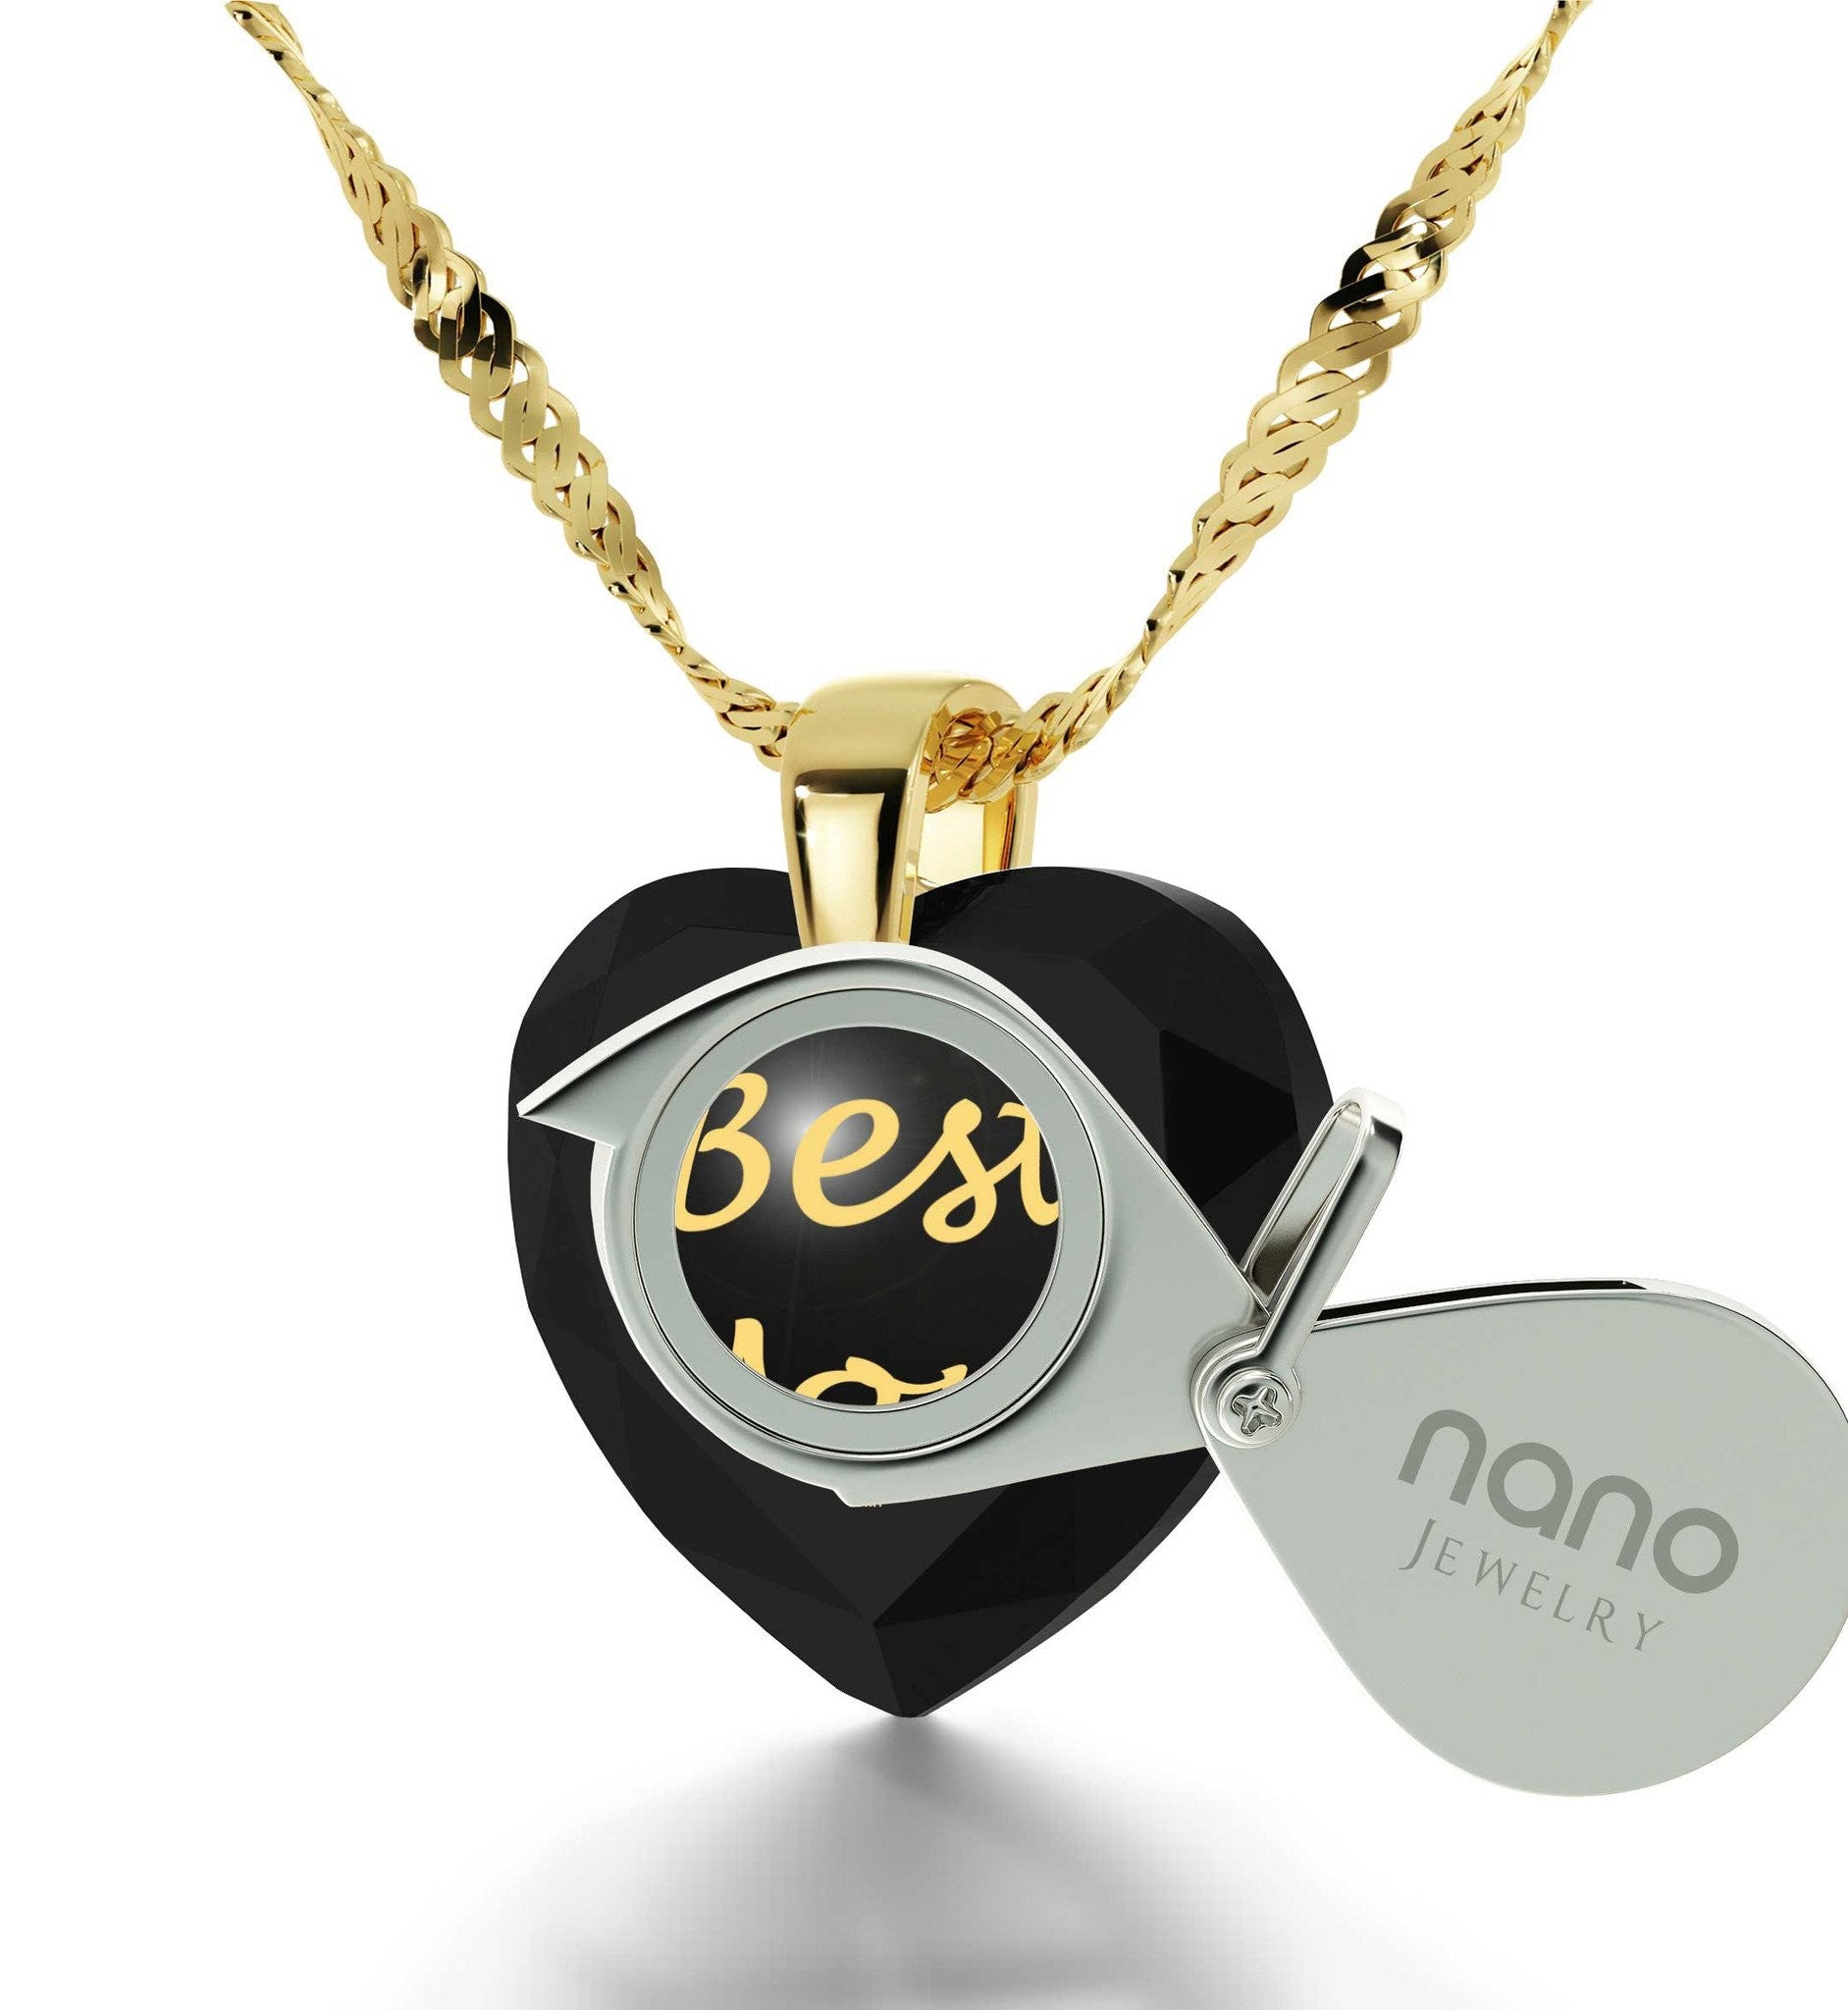 Presents for Mom Christmas, Gold Filled Engraved Necklaces, Special Mother's Day Gifts